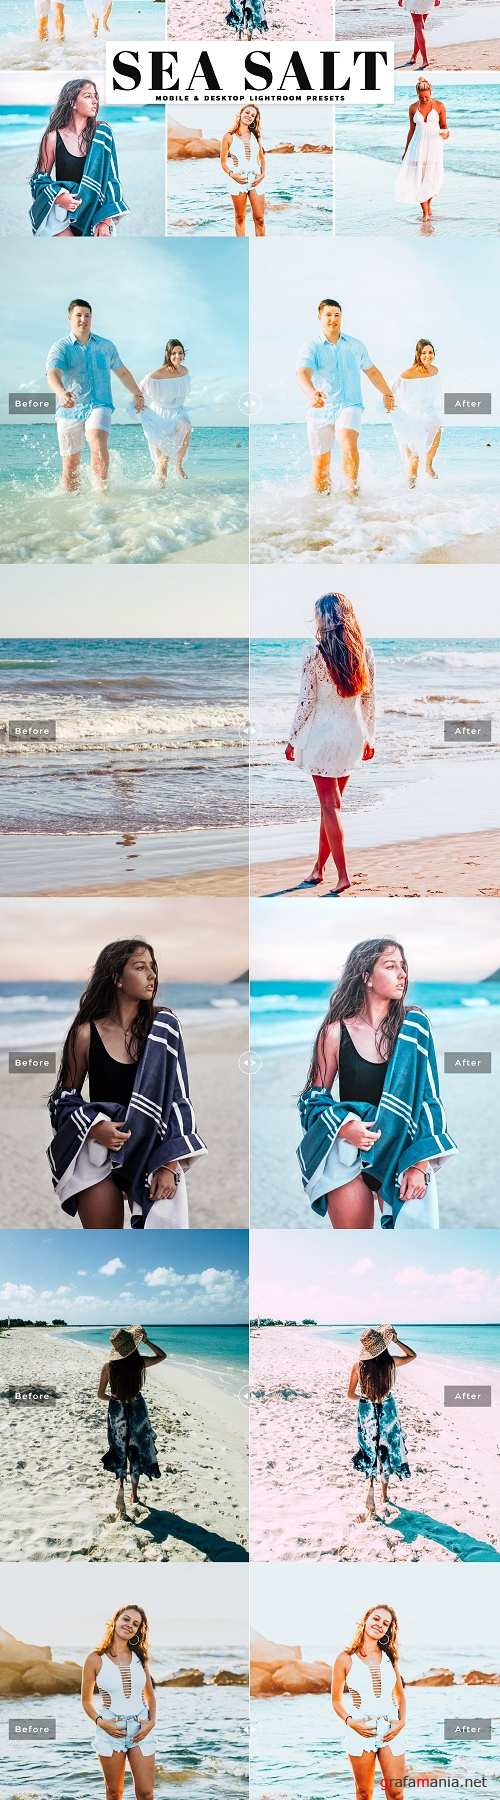 Sea Salt Lightroom Presets Pack - 4027508